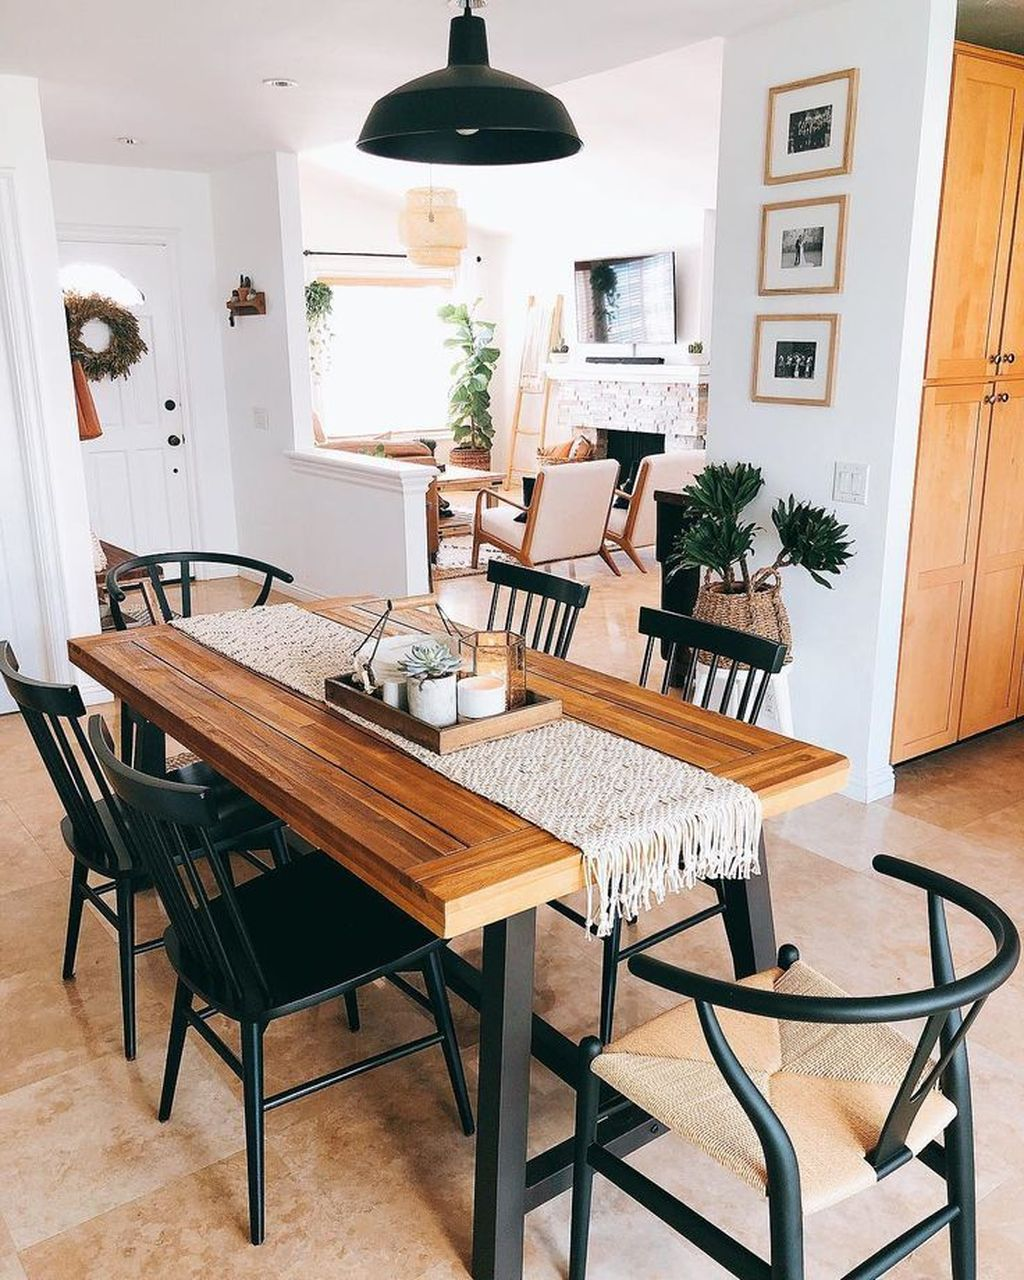 Admirable Dining Room Design Ideas You Will Love 10 1